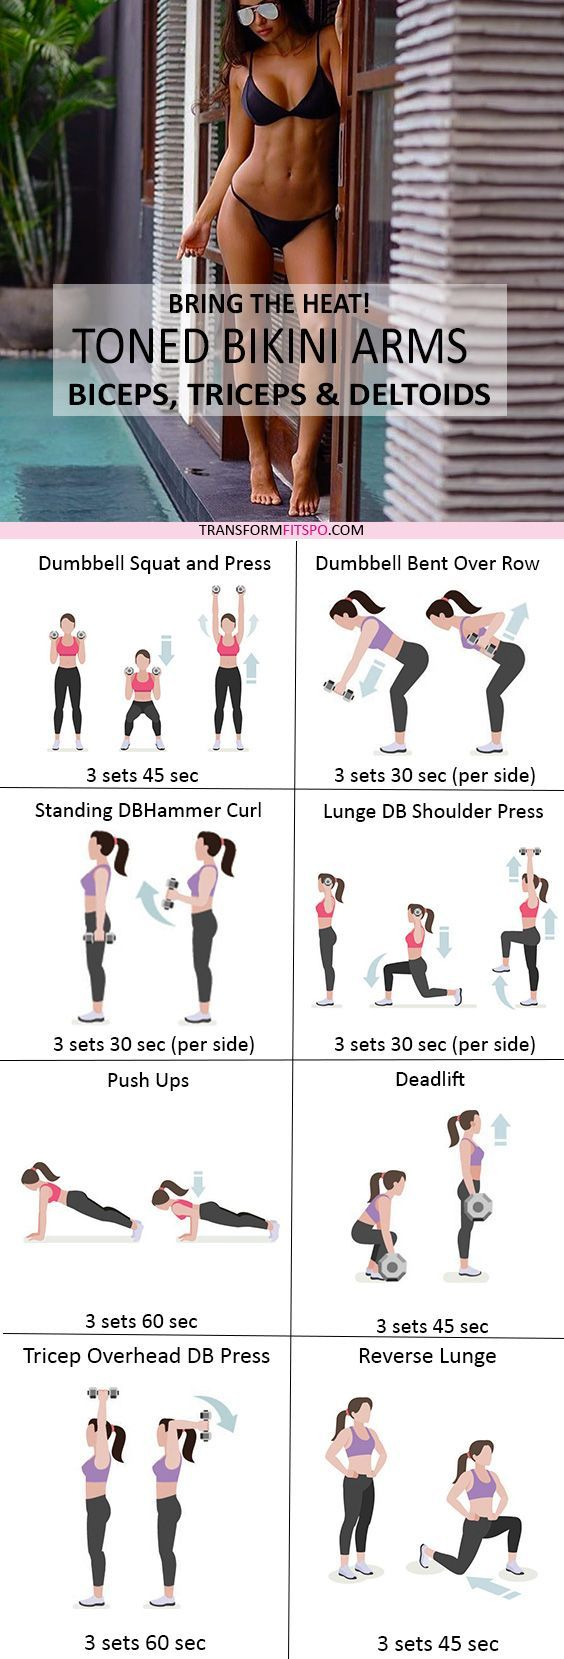 💪 Bring the HEAT! Sexy, Toned Bikini Arms – Rapid Results Workout for Women! – Jay